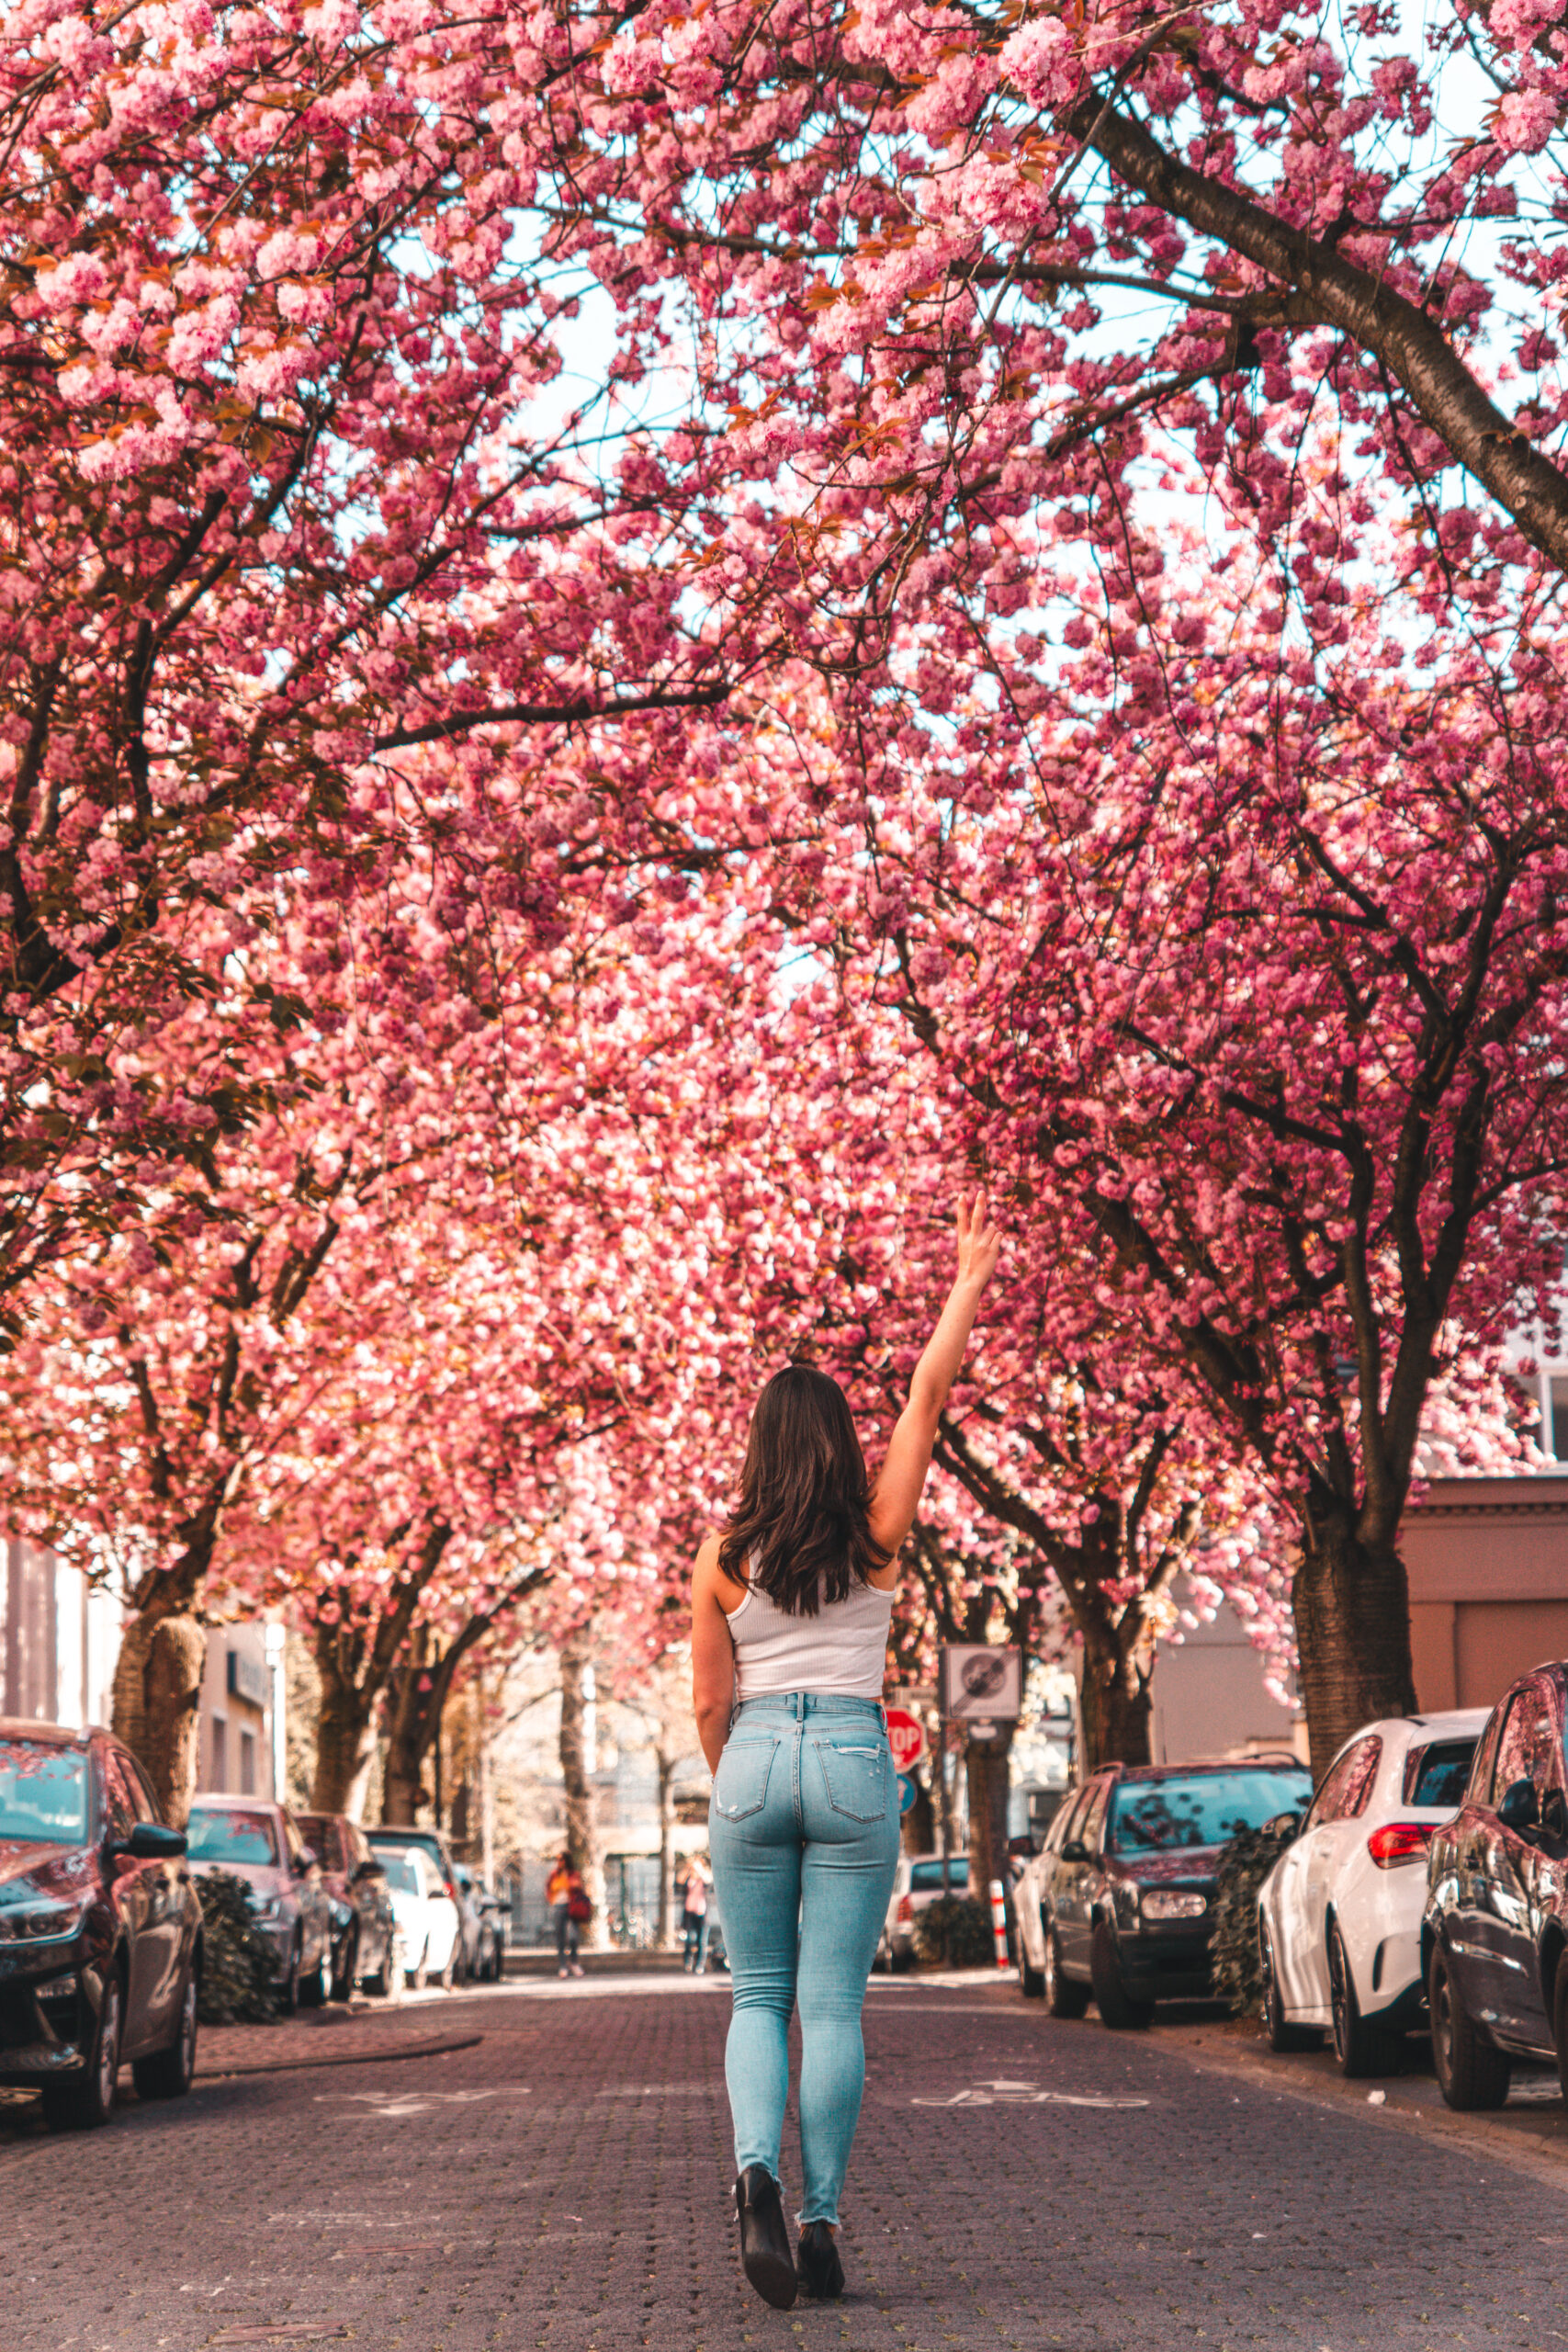 Bonn Cherry Blossom | When, where, and everything you need to know